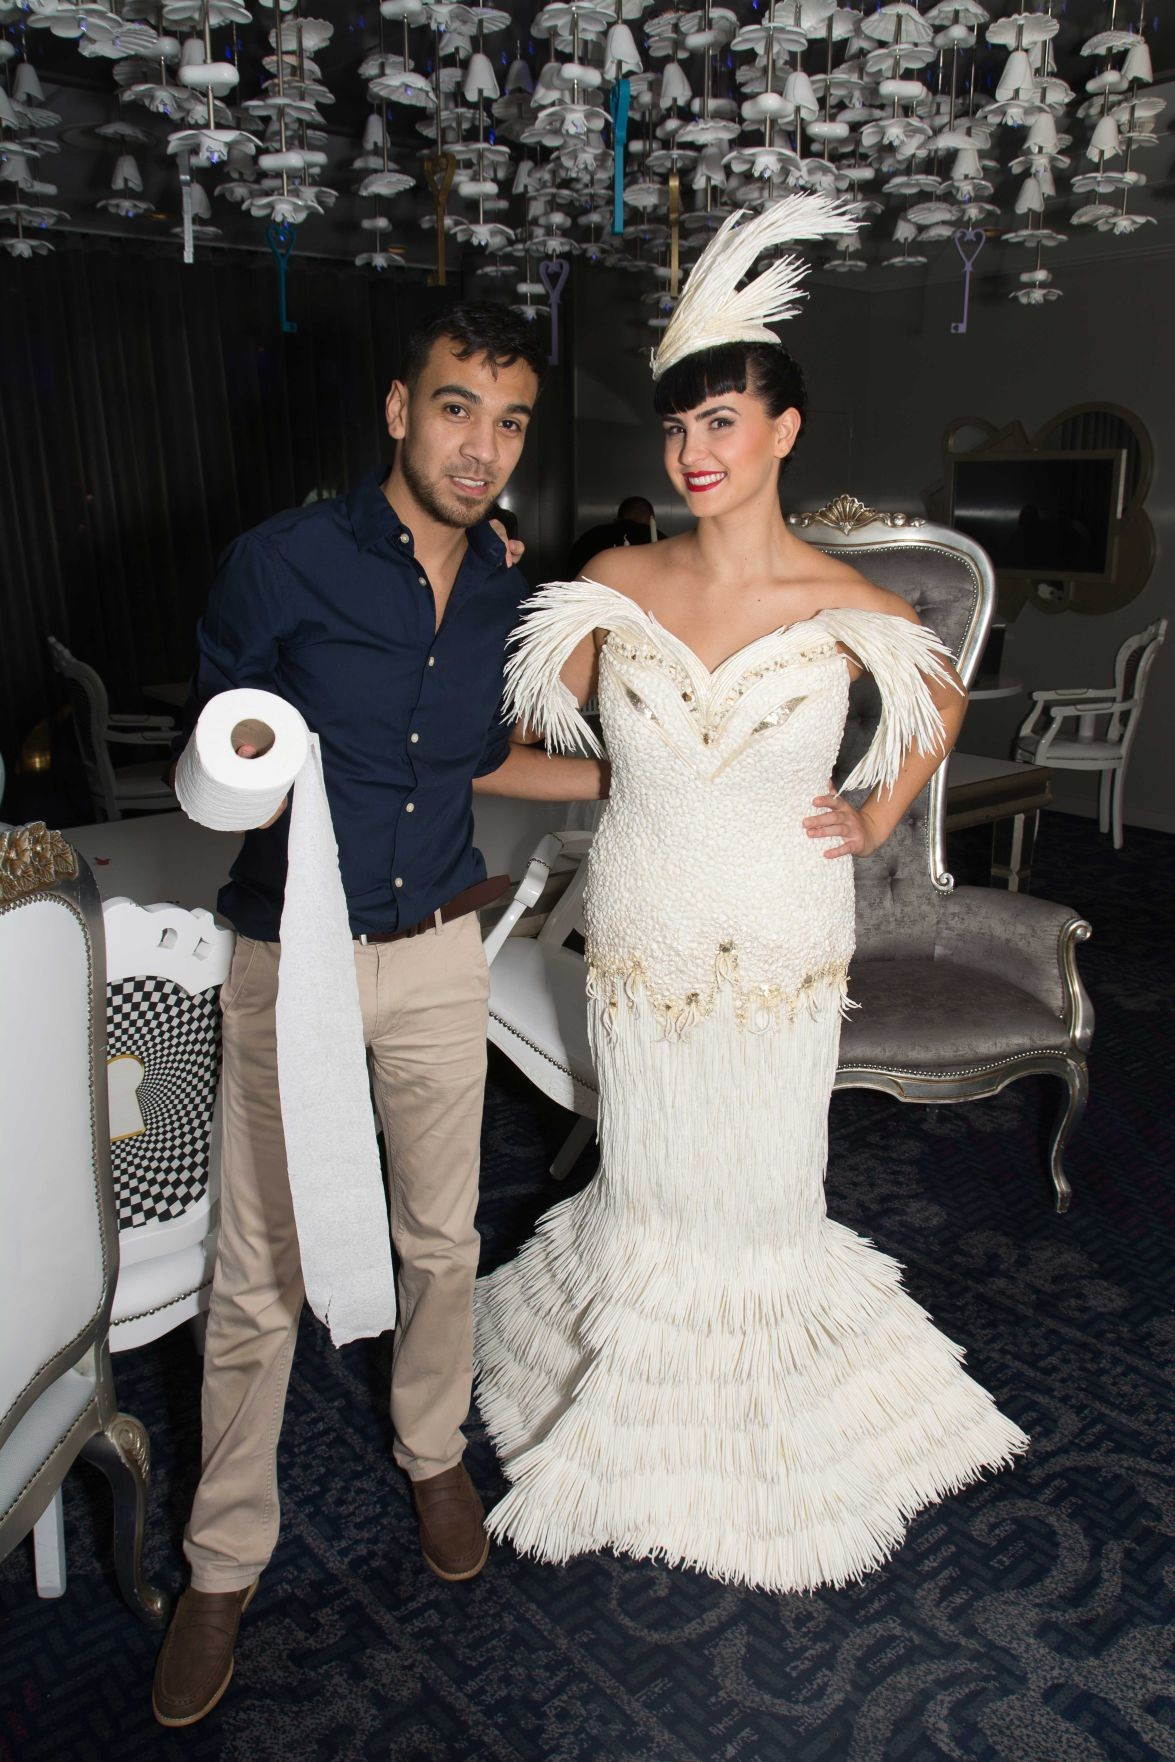 Cedar Park man competes with toilet paper wedding dress | Hill ...